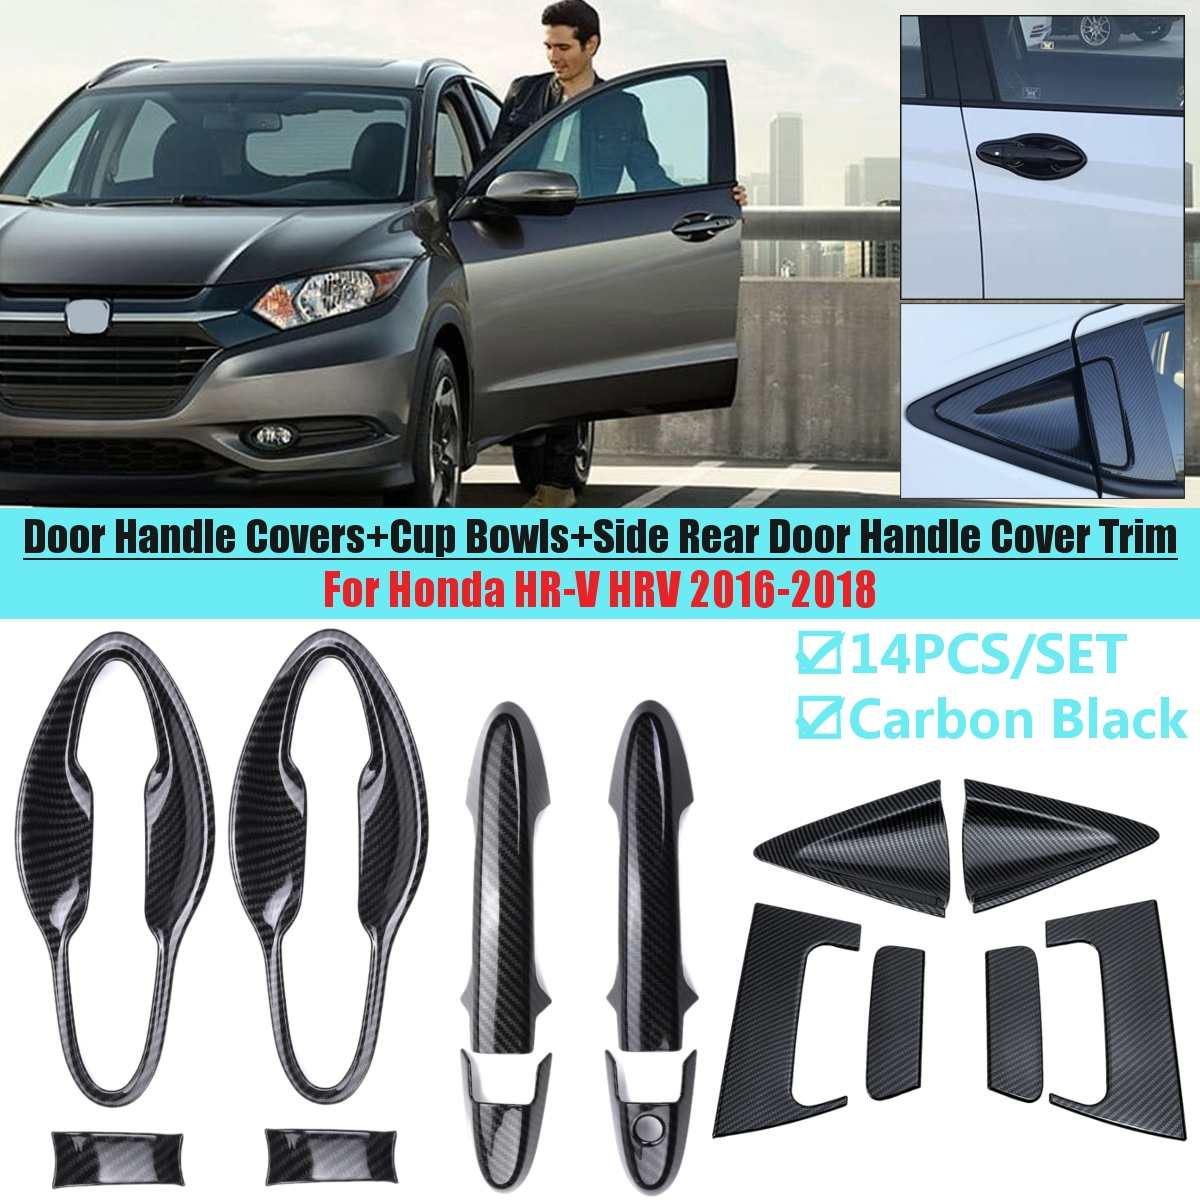 Car Front Rear Door handle Chrome Door Handle Covers + Cup Bowls Sticker For <font><b>Honda</b></font> HR-V <font><b>HRV</b></font> 2016 2017 2018 Styling <font><b>Accessories</b></font> image